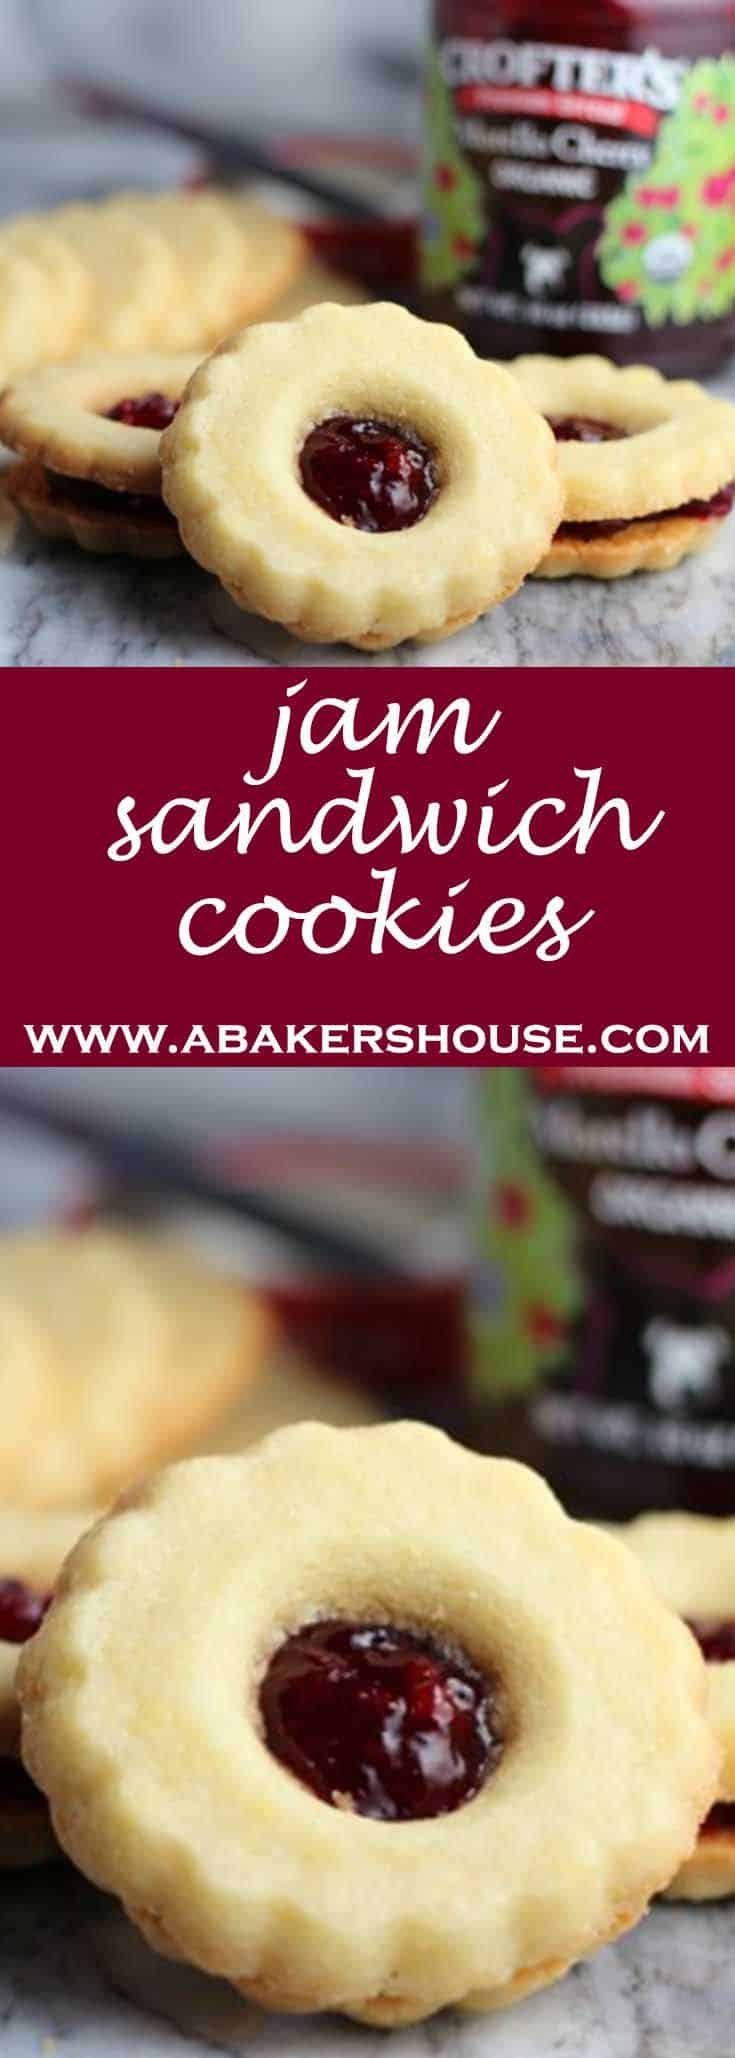 Butter cookies with cherry jam in the middle make these jam sandwich cookies. #abakershouse #teatime #shortbread #sandwichcookies